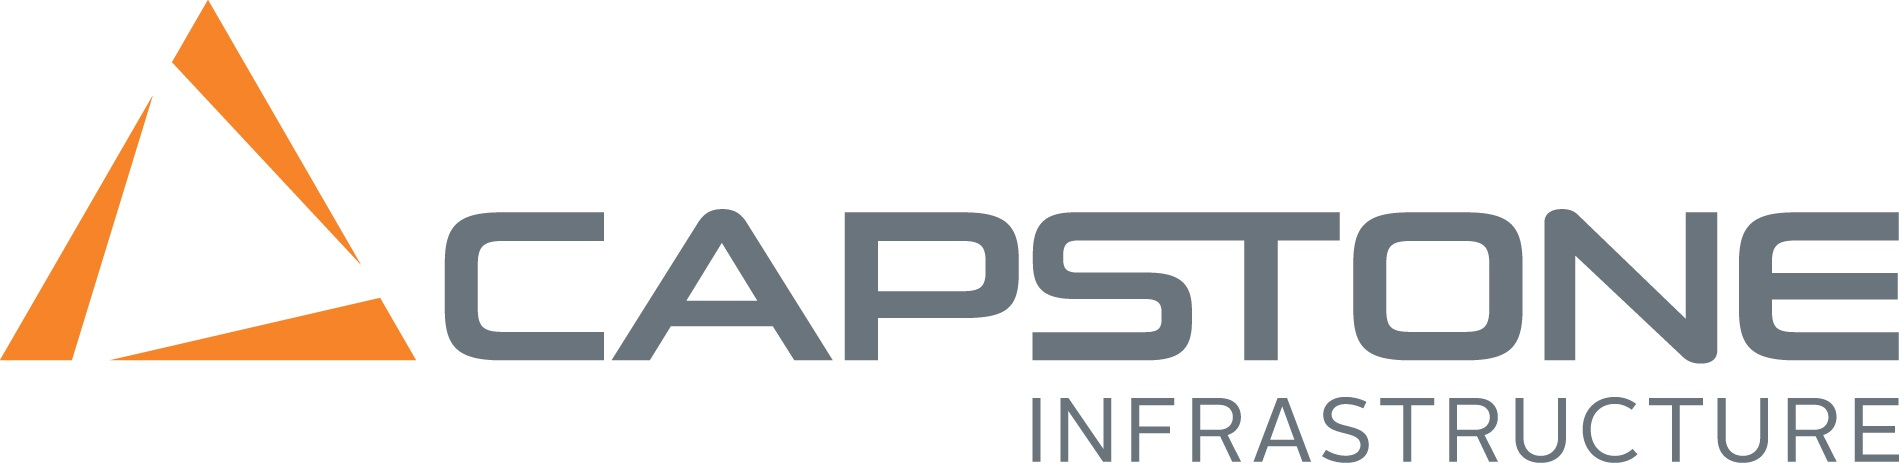 Capstone Infrastructure Corporation Reports First Quarter 2019 Results and Declares a Quarterly Dividend